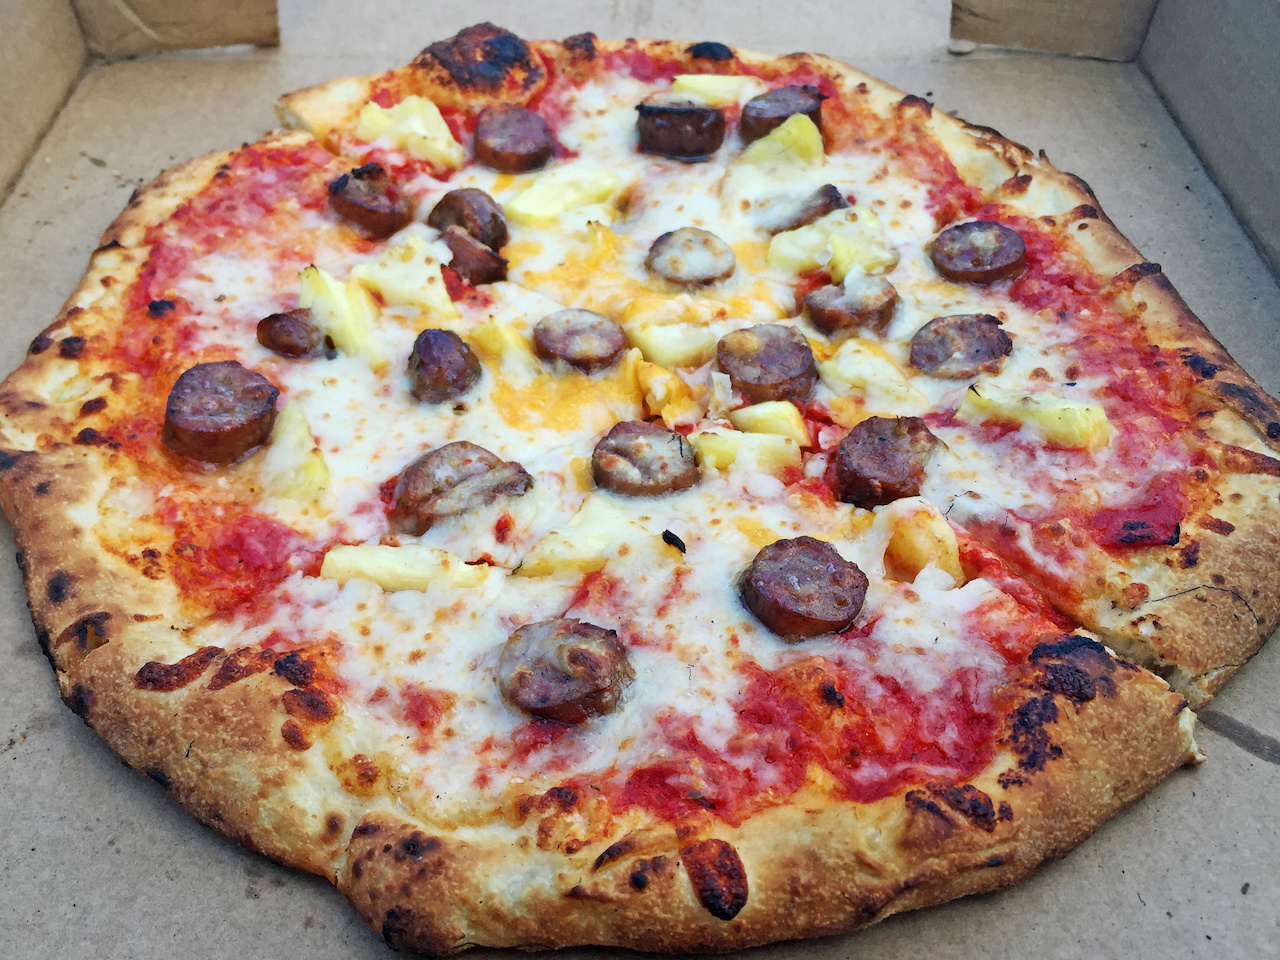 The Southern Hawaii is a perfect mix of Conecuh sausage, fresh cut pineapple and a mix of provolone and mozzarella — Yum!